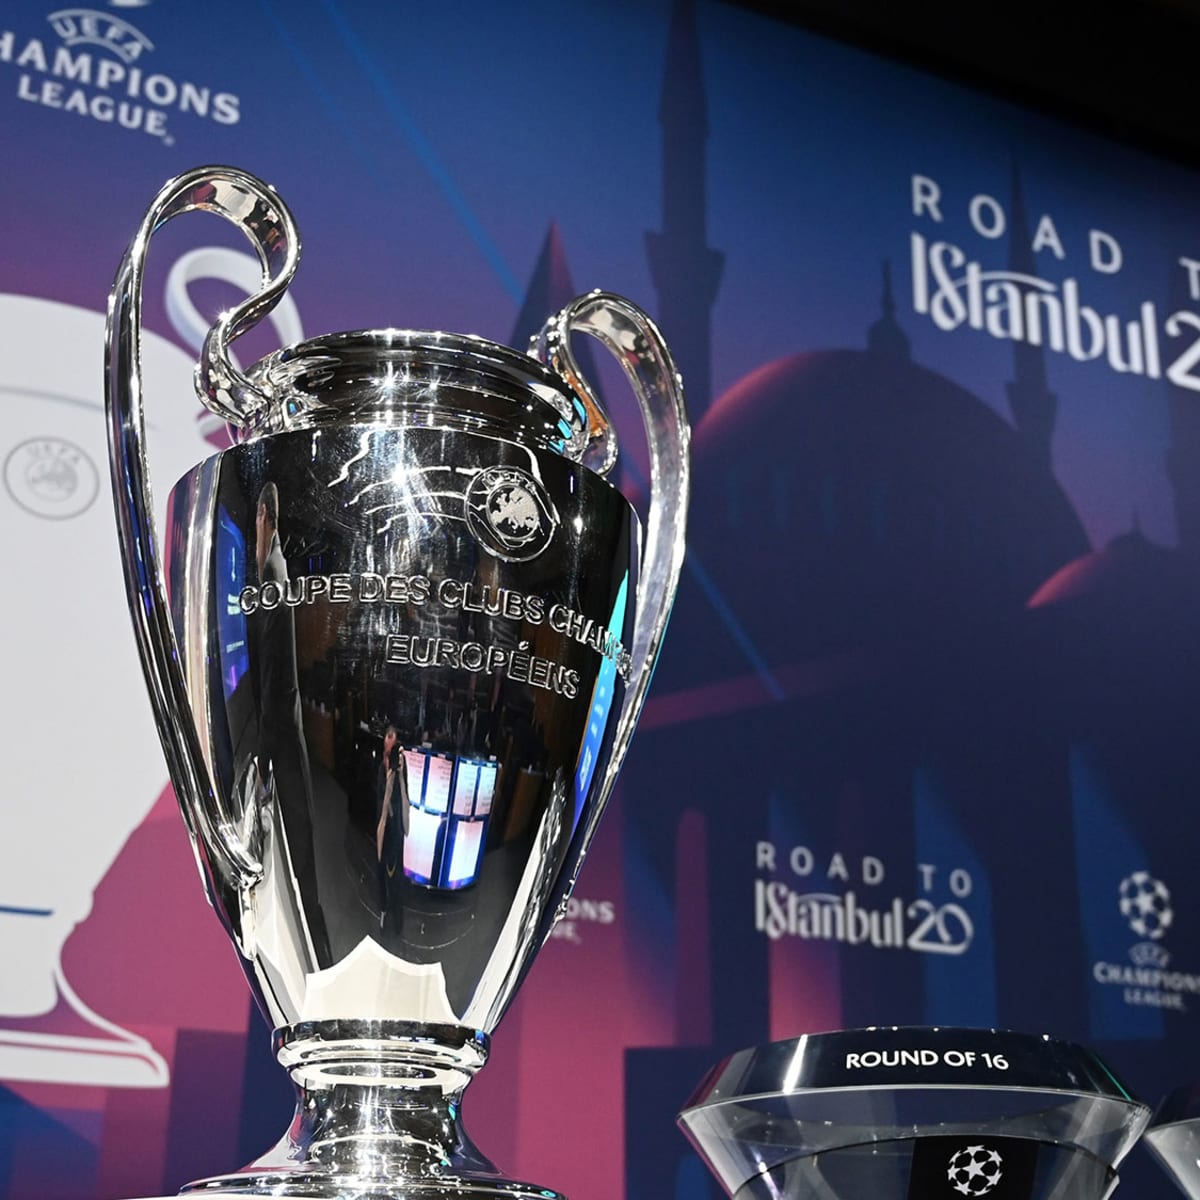 Champions League final in Istanbul